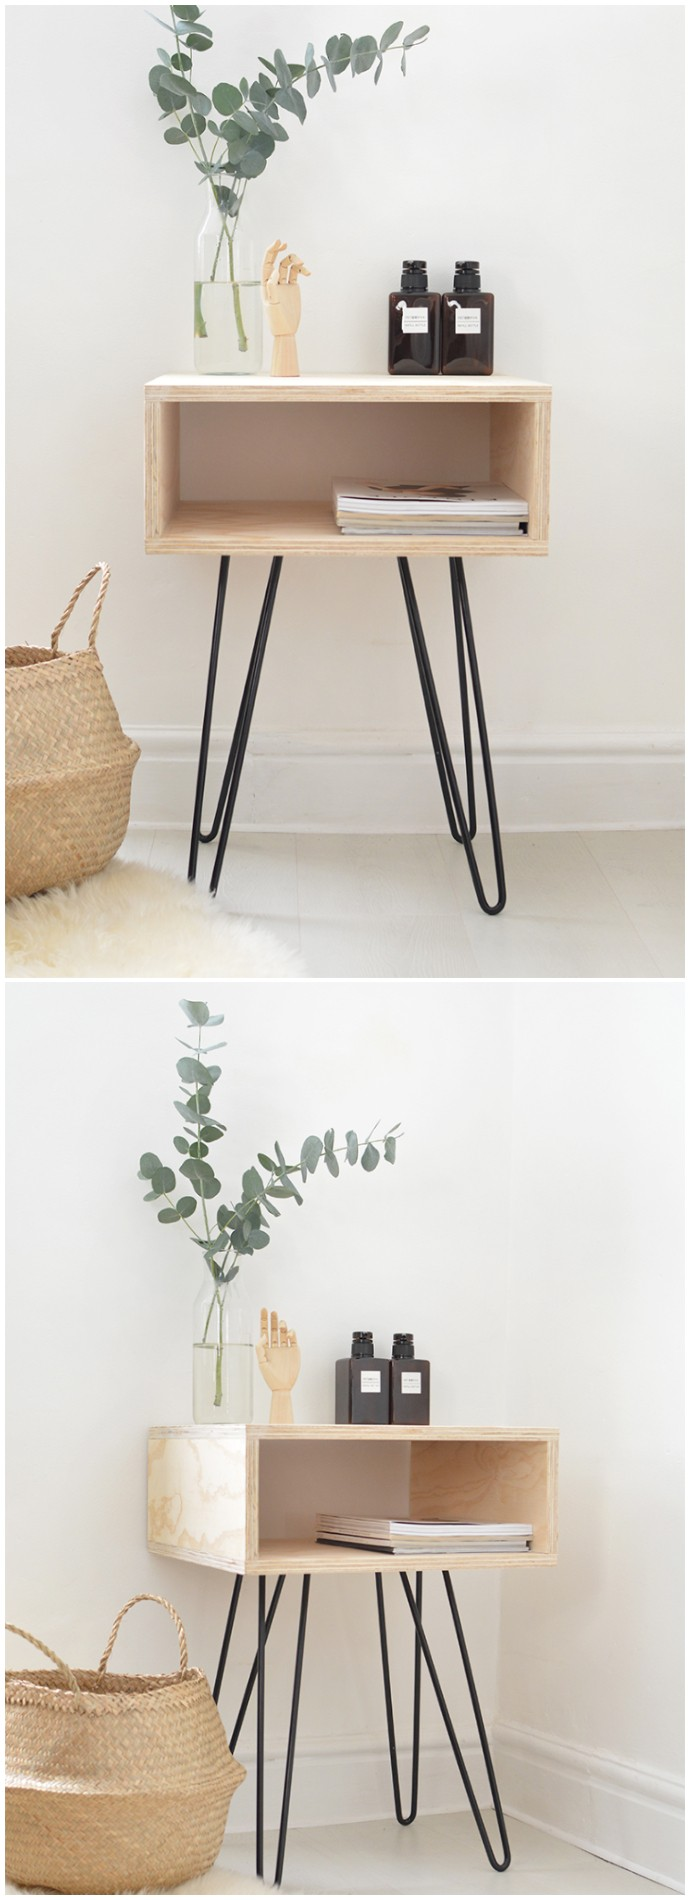 Diy Nightstand Free Plans Build Your Own Craft Ideas